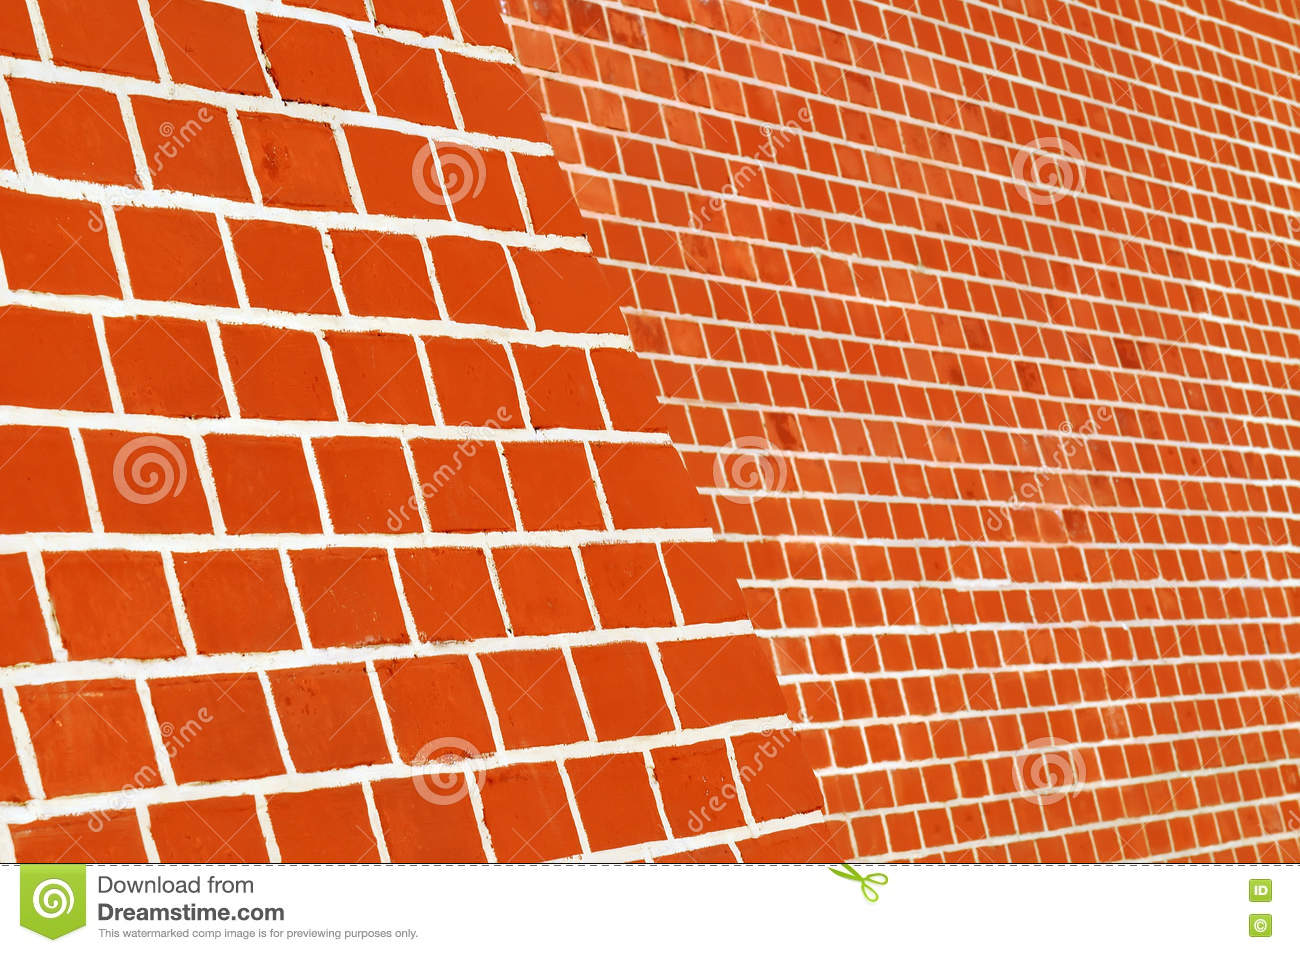 Red Brick Wall With White Seams Side View